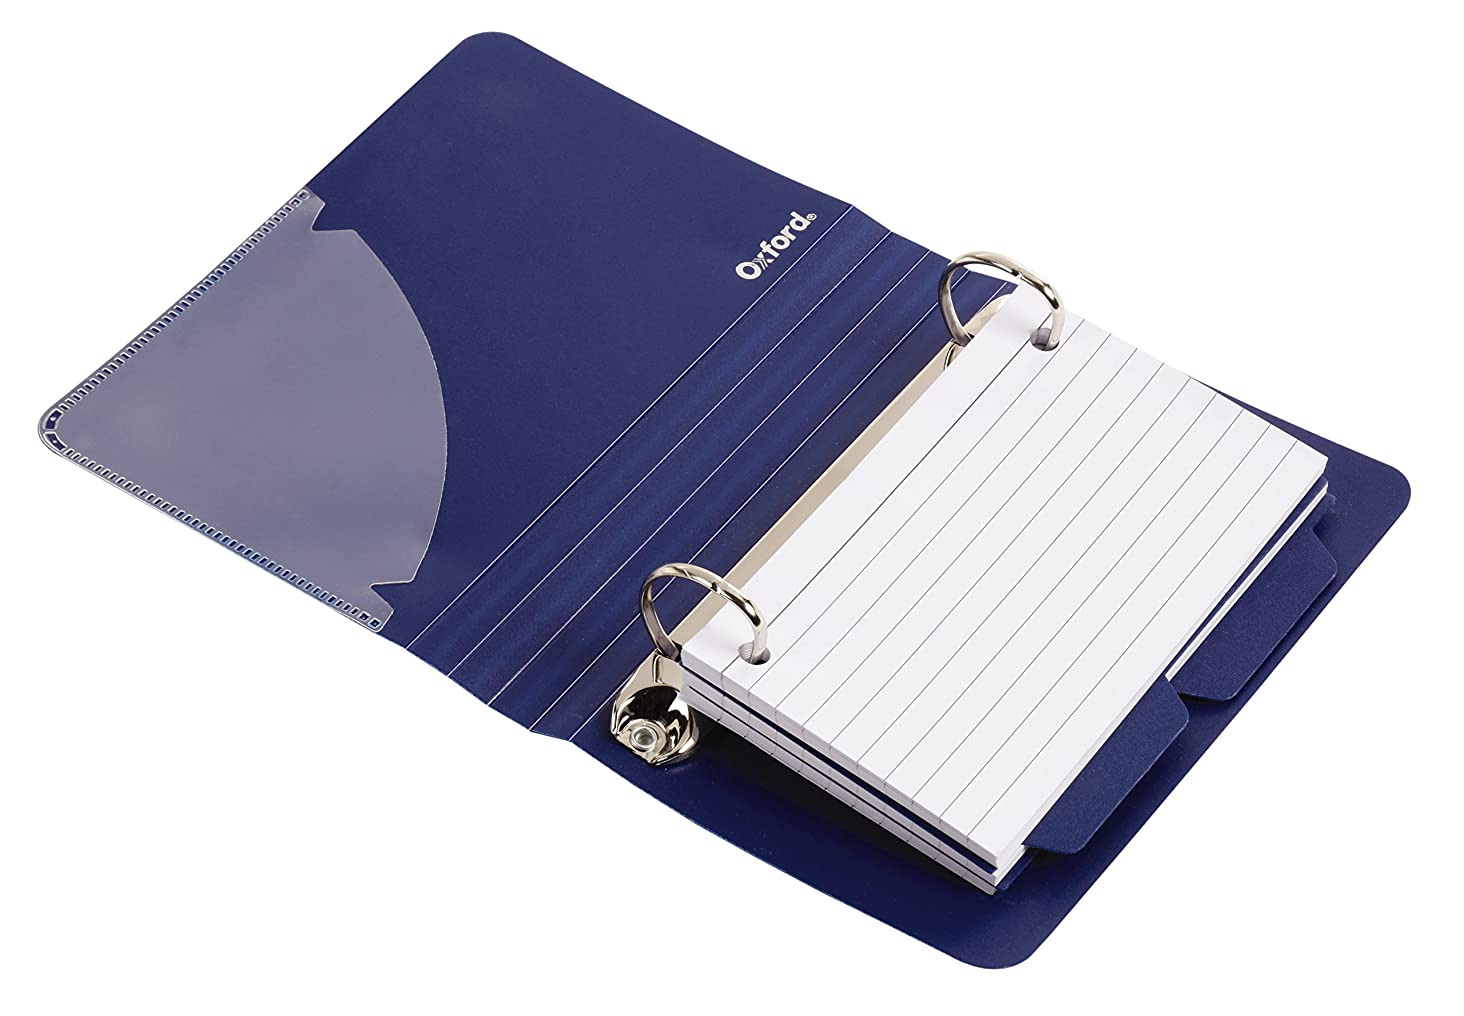 Oxford Poly Index Card Binder, 3 x 5 Inches, Color Will Vary, Includes 50 Pre-Punched Cards (73569)